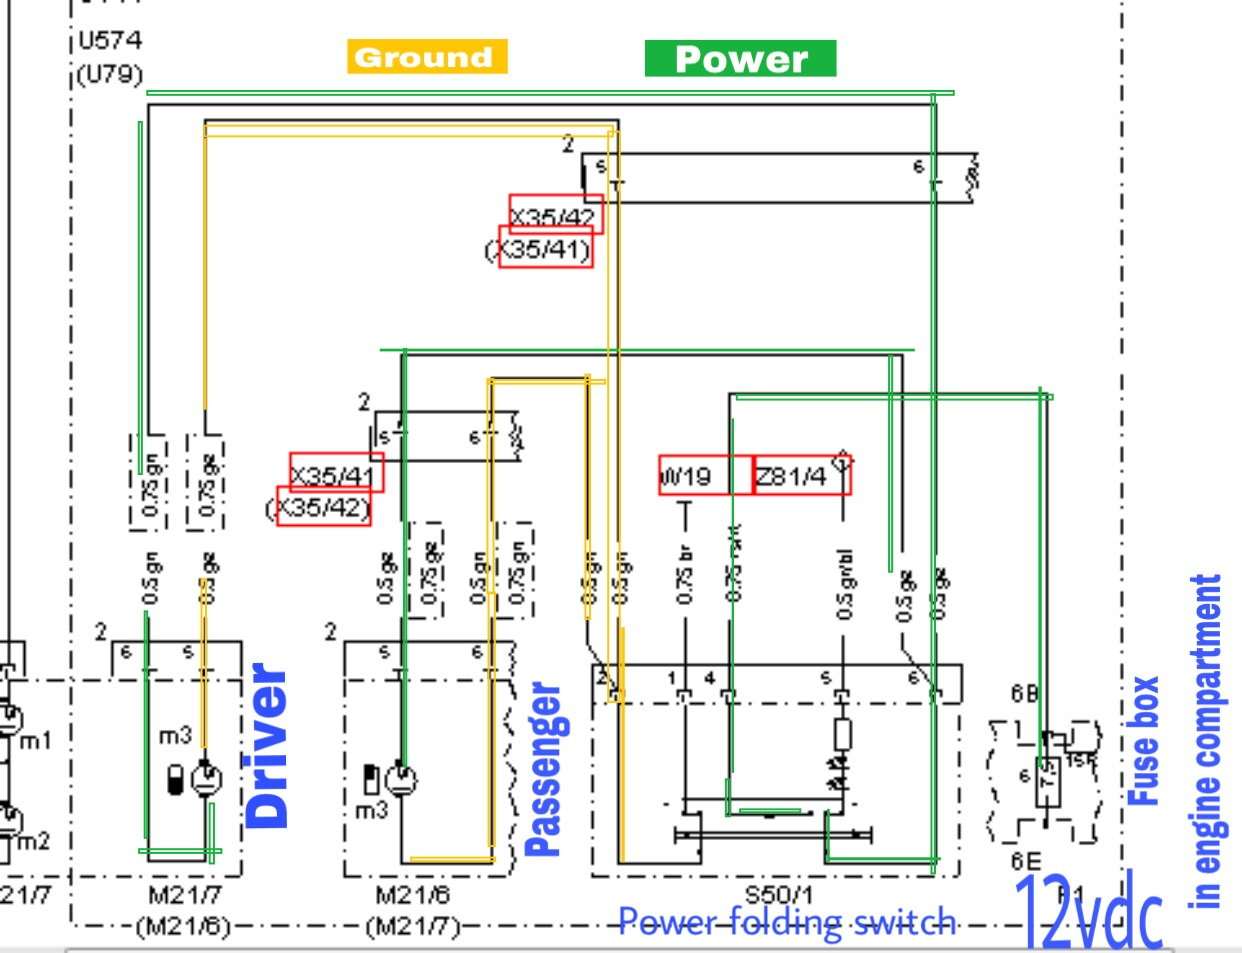 W202 To W210 Power Folding Mirror Upgrade Forums Led Diode Wiring Diagram Motor Same On And From What I Have Seen The Wis But Keep In Mind Is Considering Euro Version My C43 Does Not